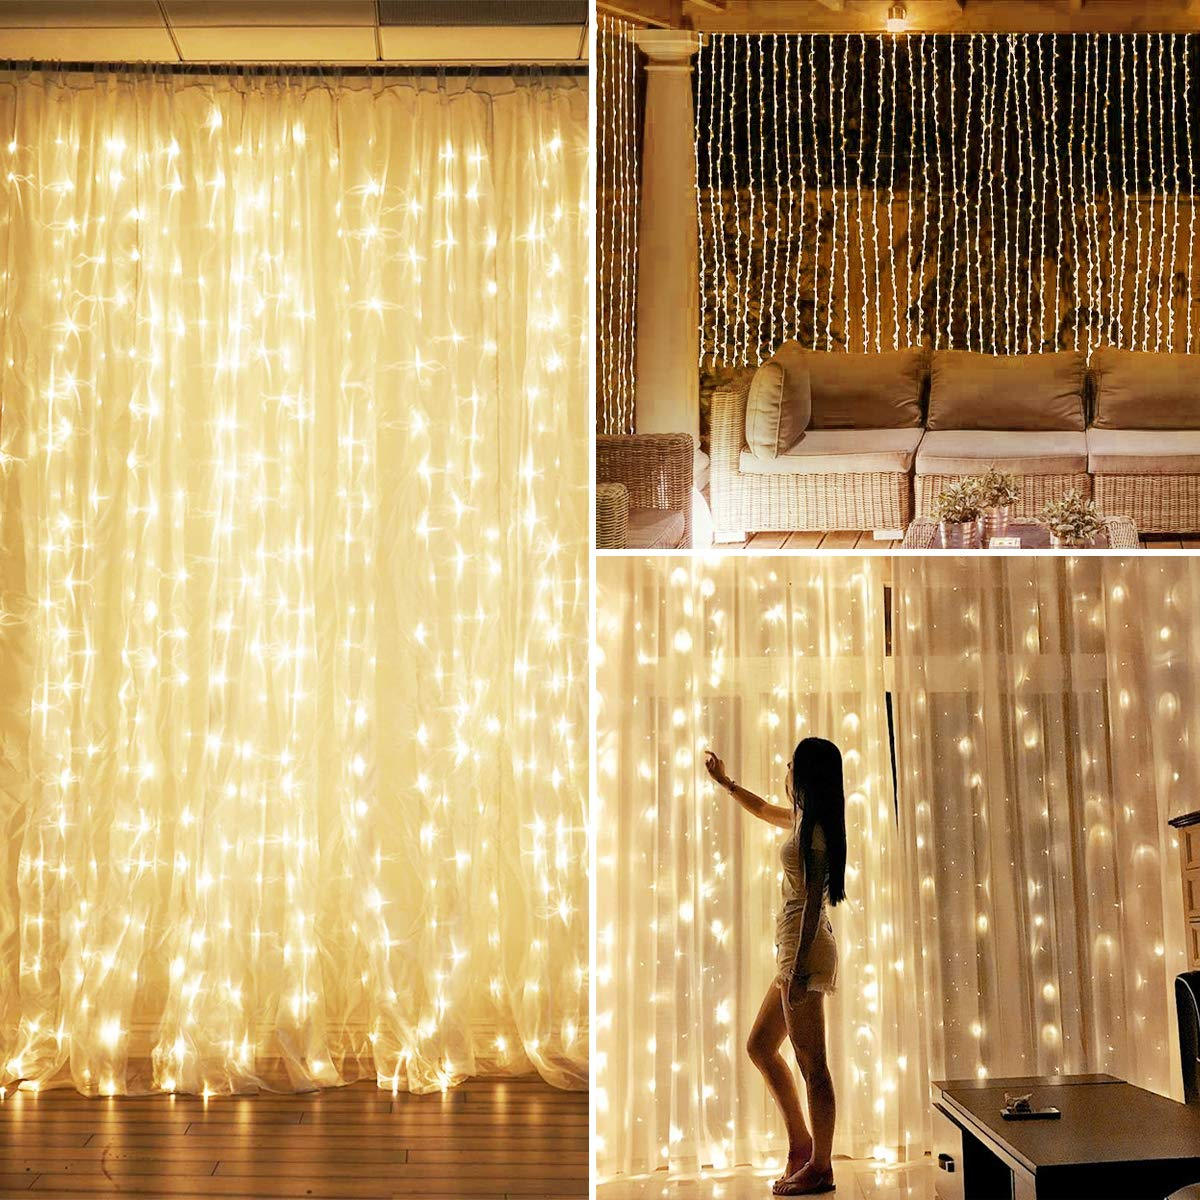 Remote Control LED Curtain Lights With Voice Activated USB Powered 300 LEDs Fairy String Lights For Chrismas/Bedroom/Parties DA